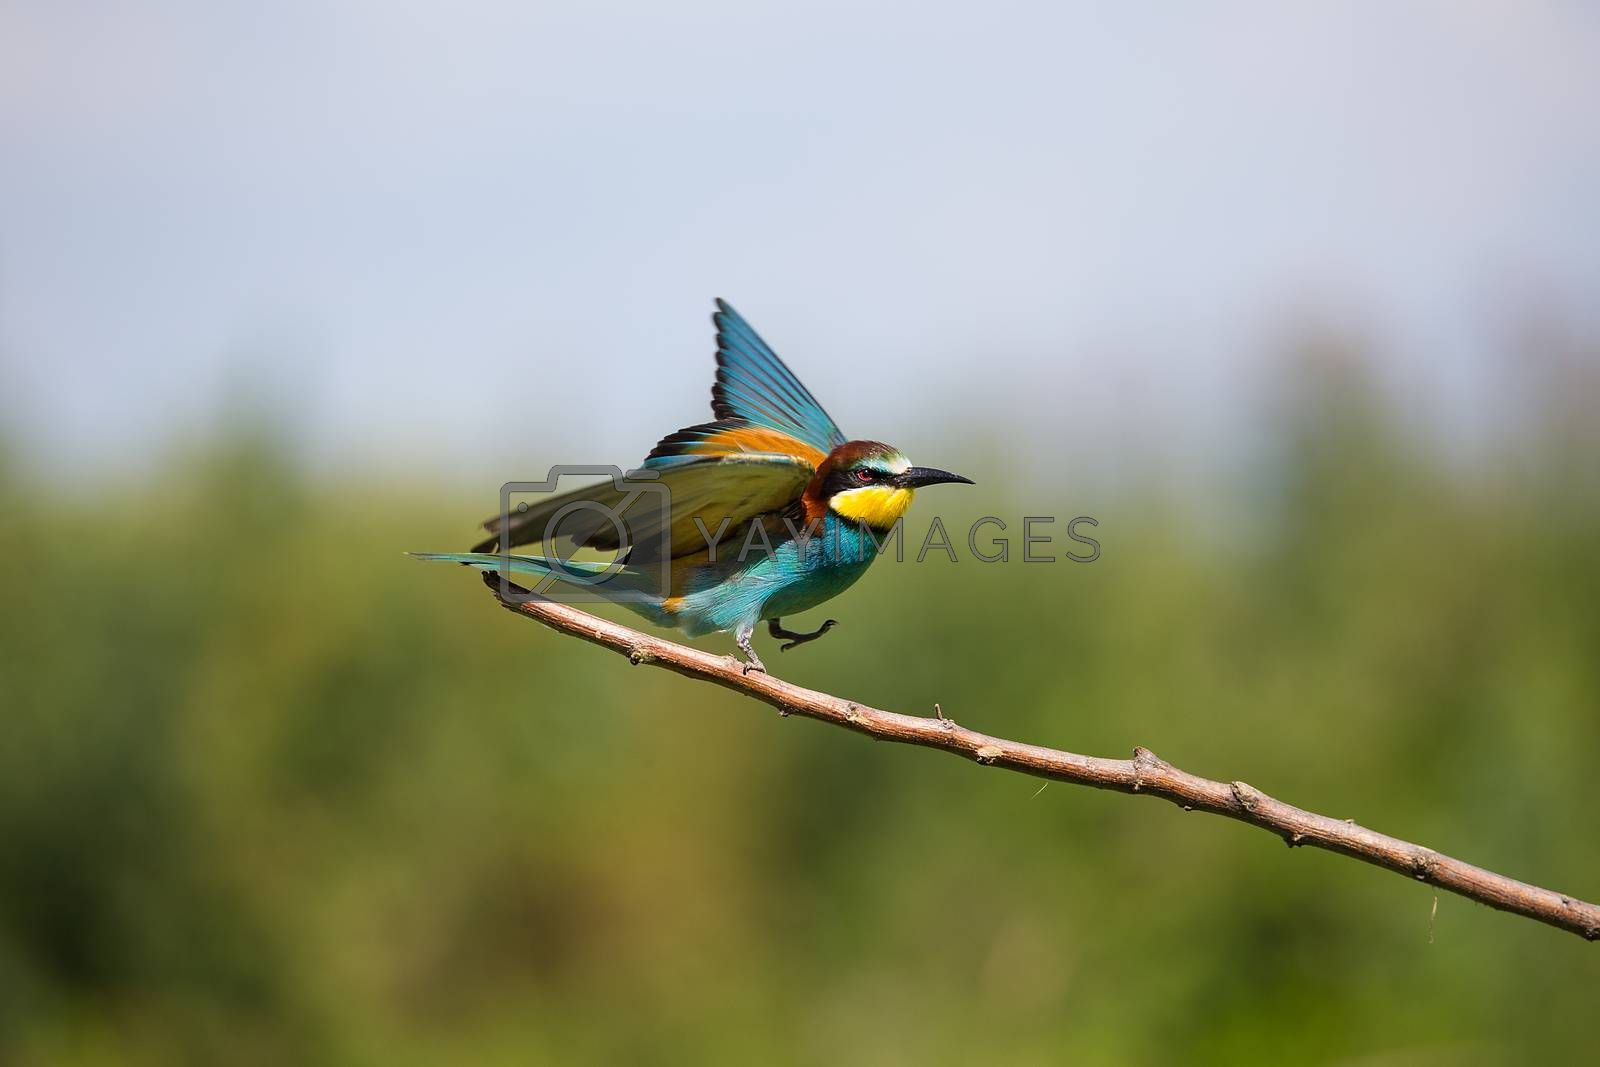 European Bee-eater (Merops apiaster) flying on brunch - tropical colours bird, Isola della Cona, Monfalcone, Italy, Europe